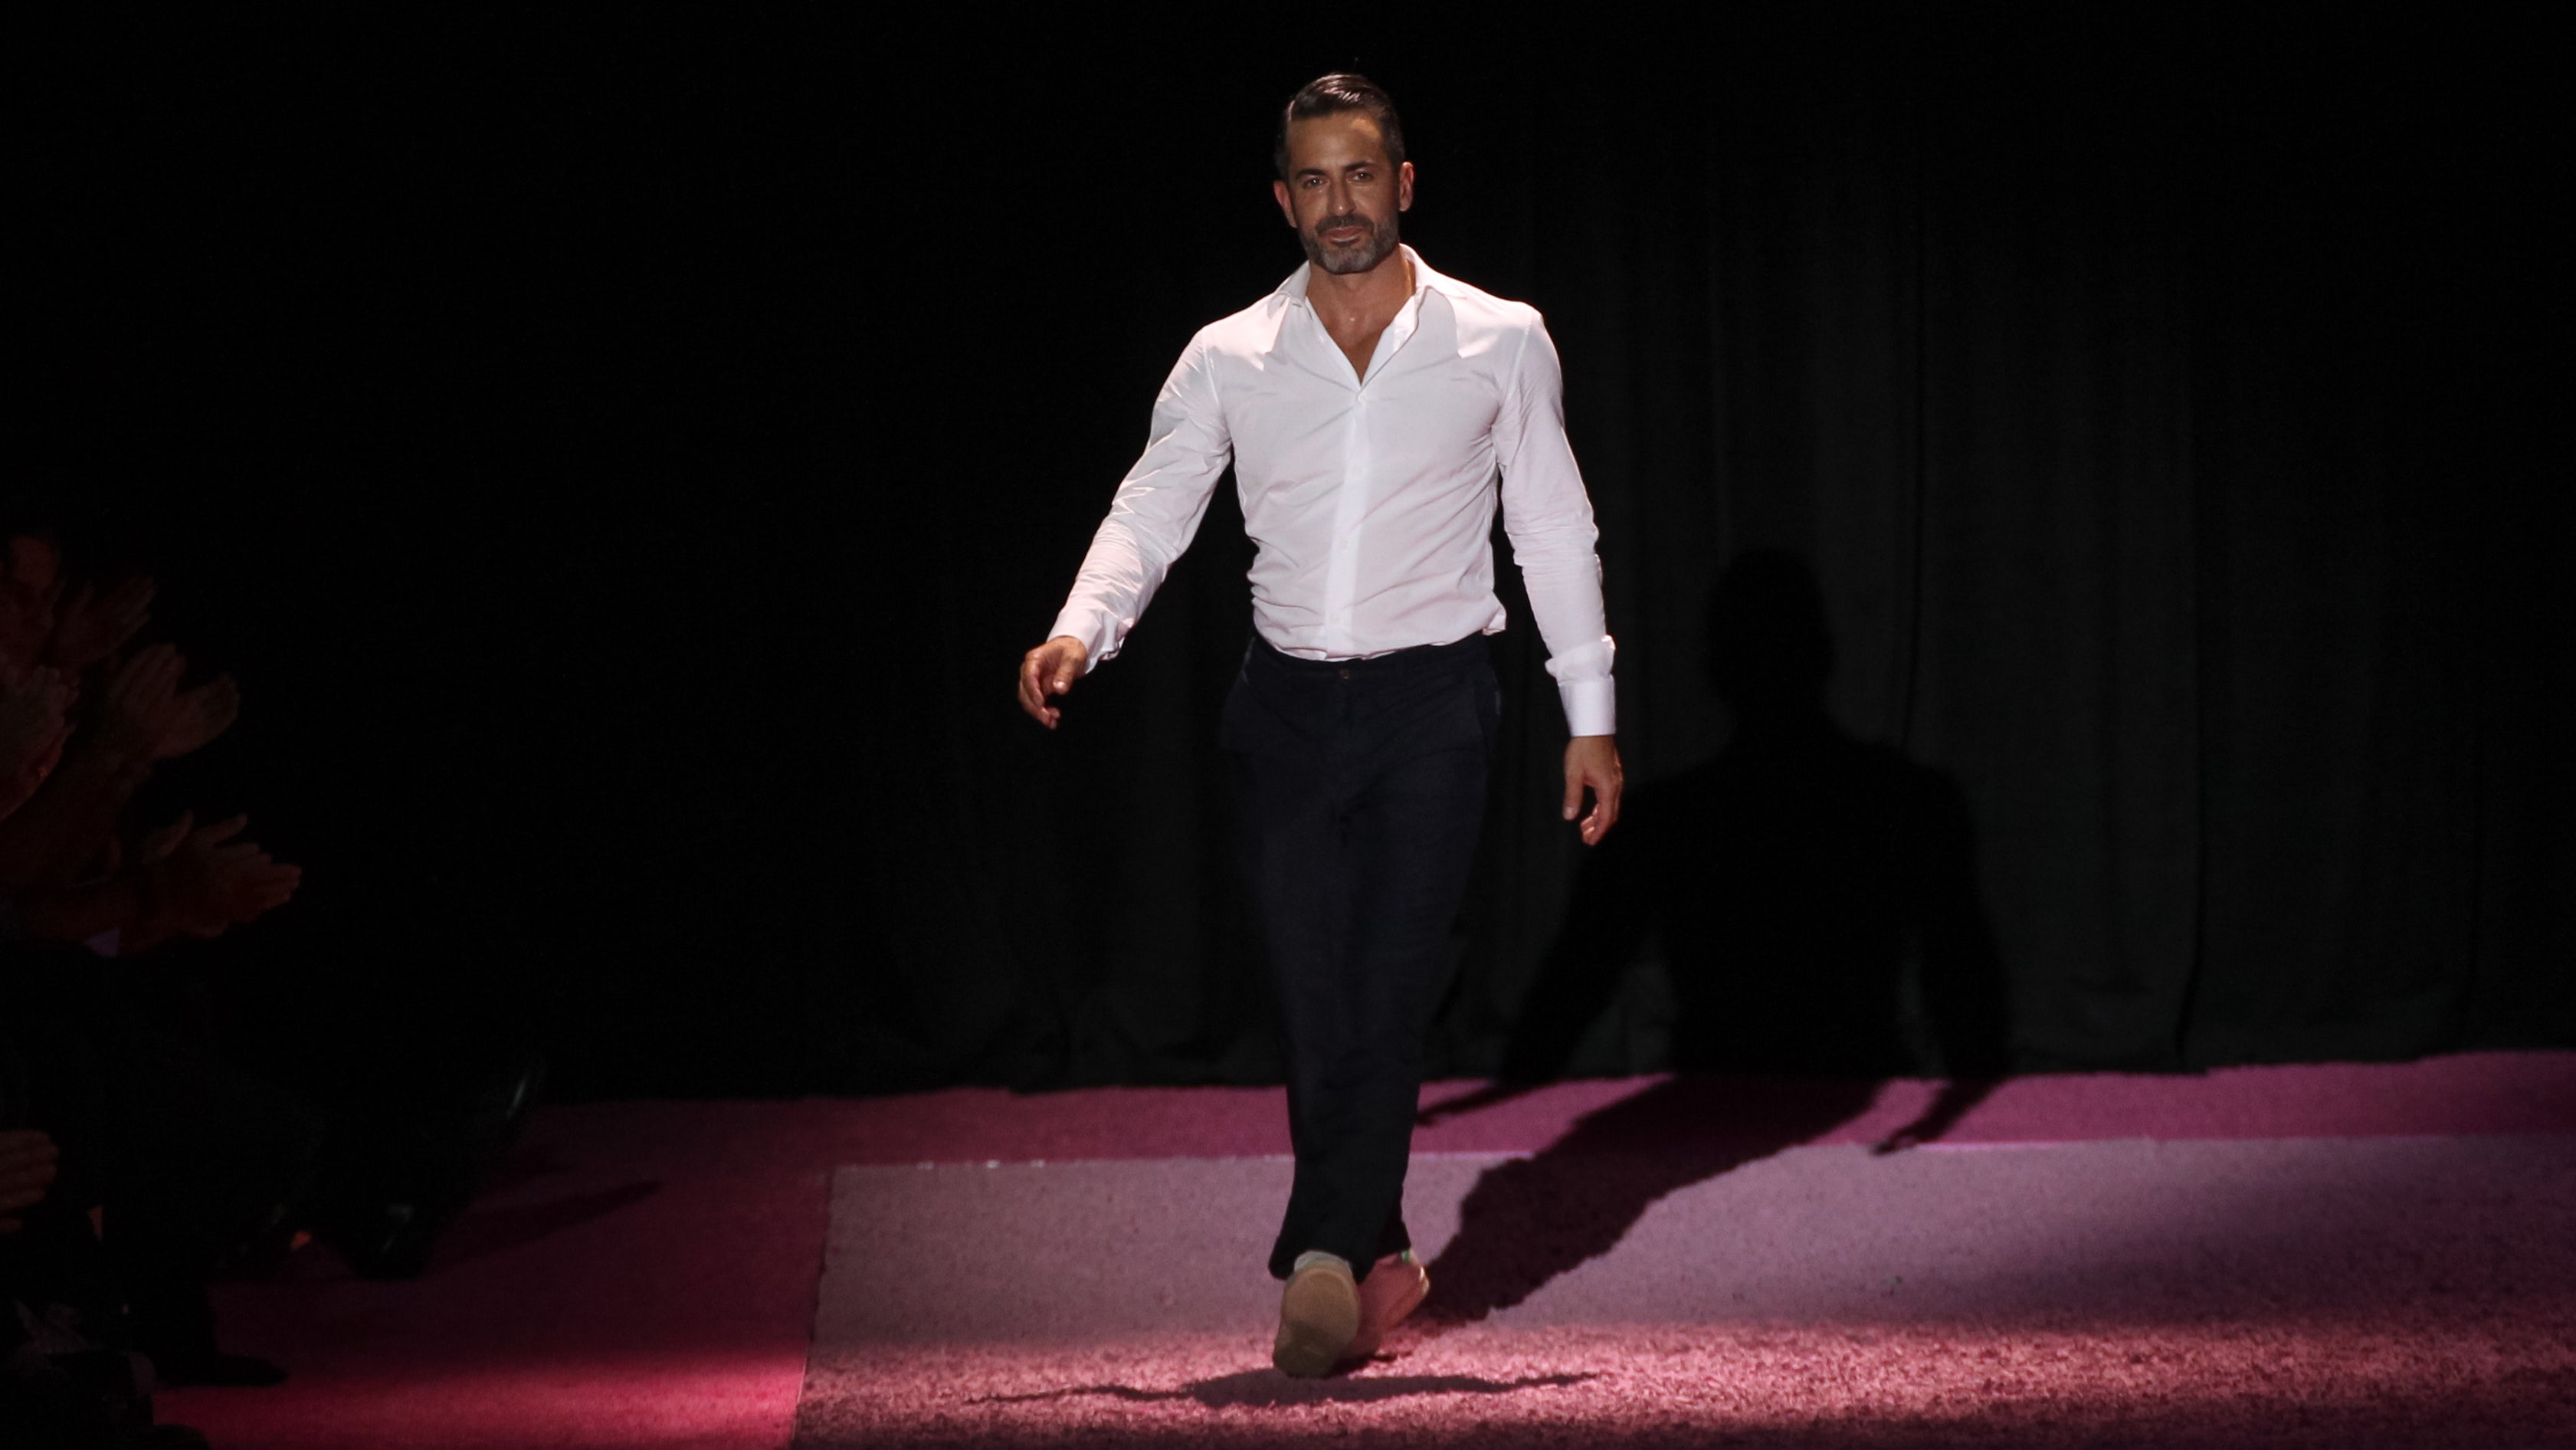 Marc Jacobs in 2015 | Source: Shutterstock